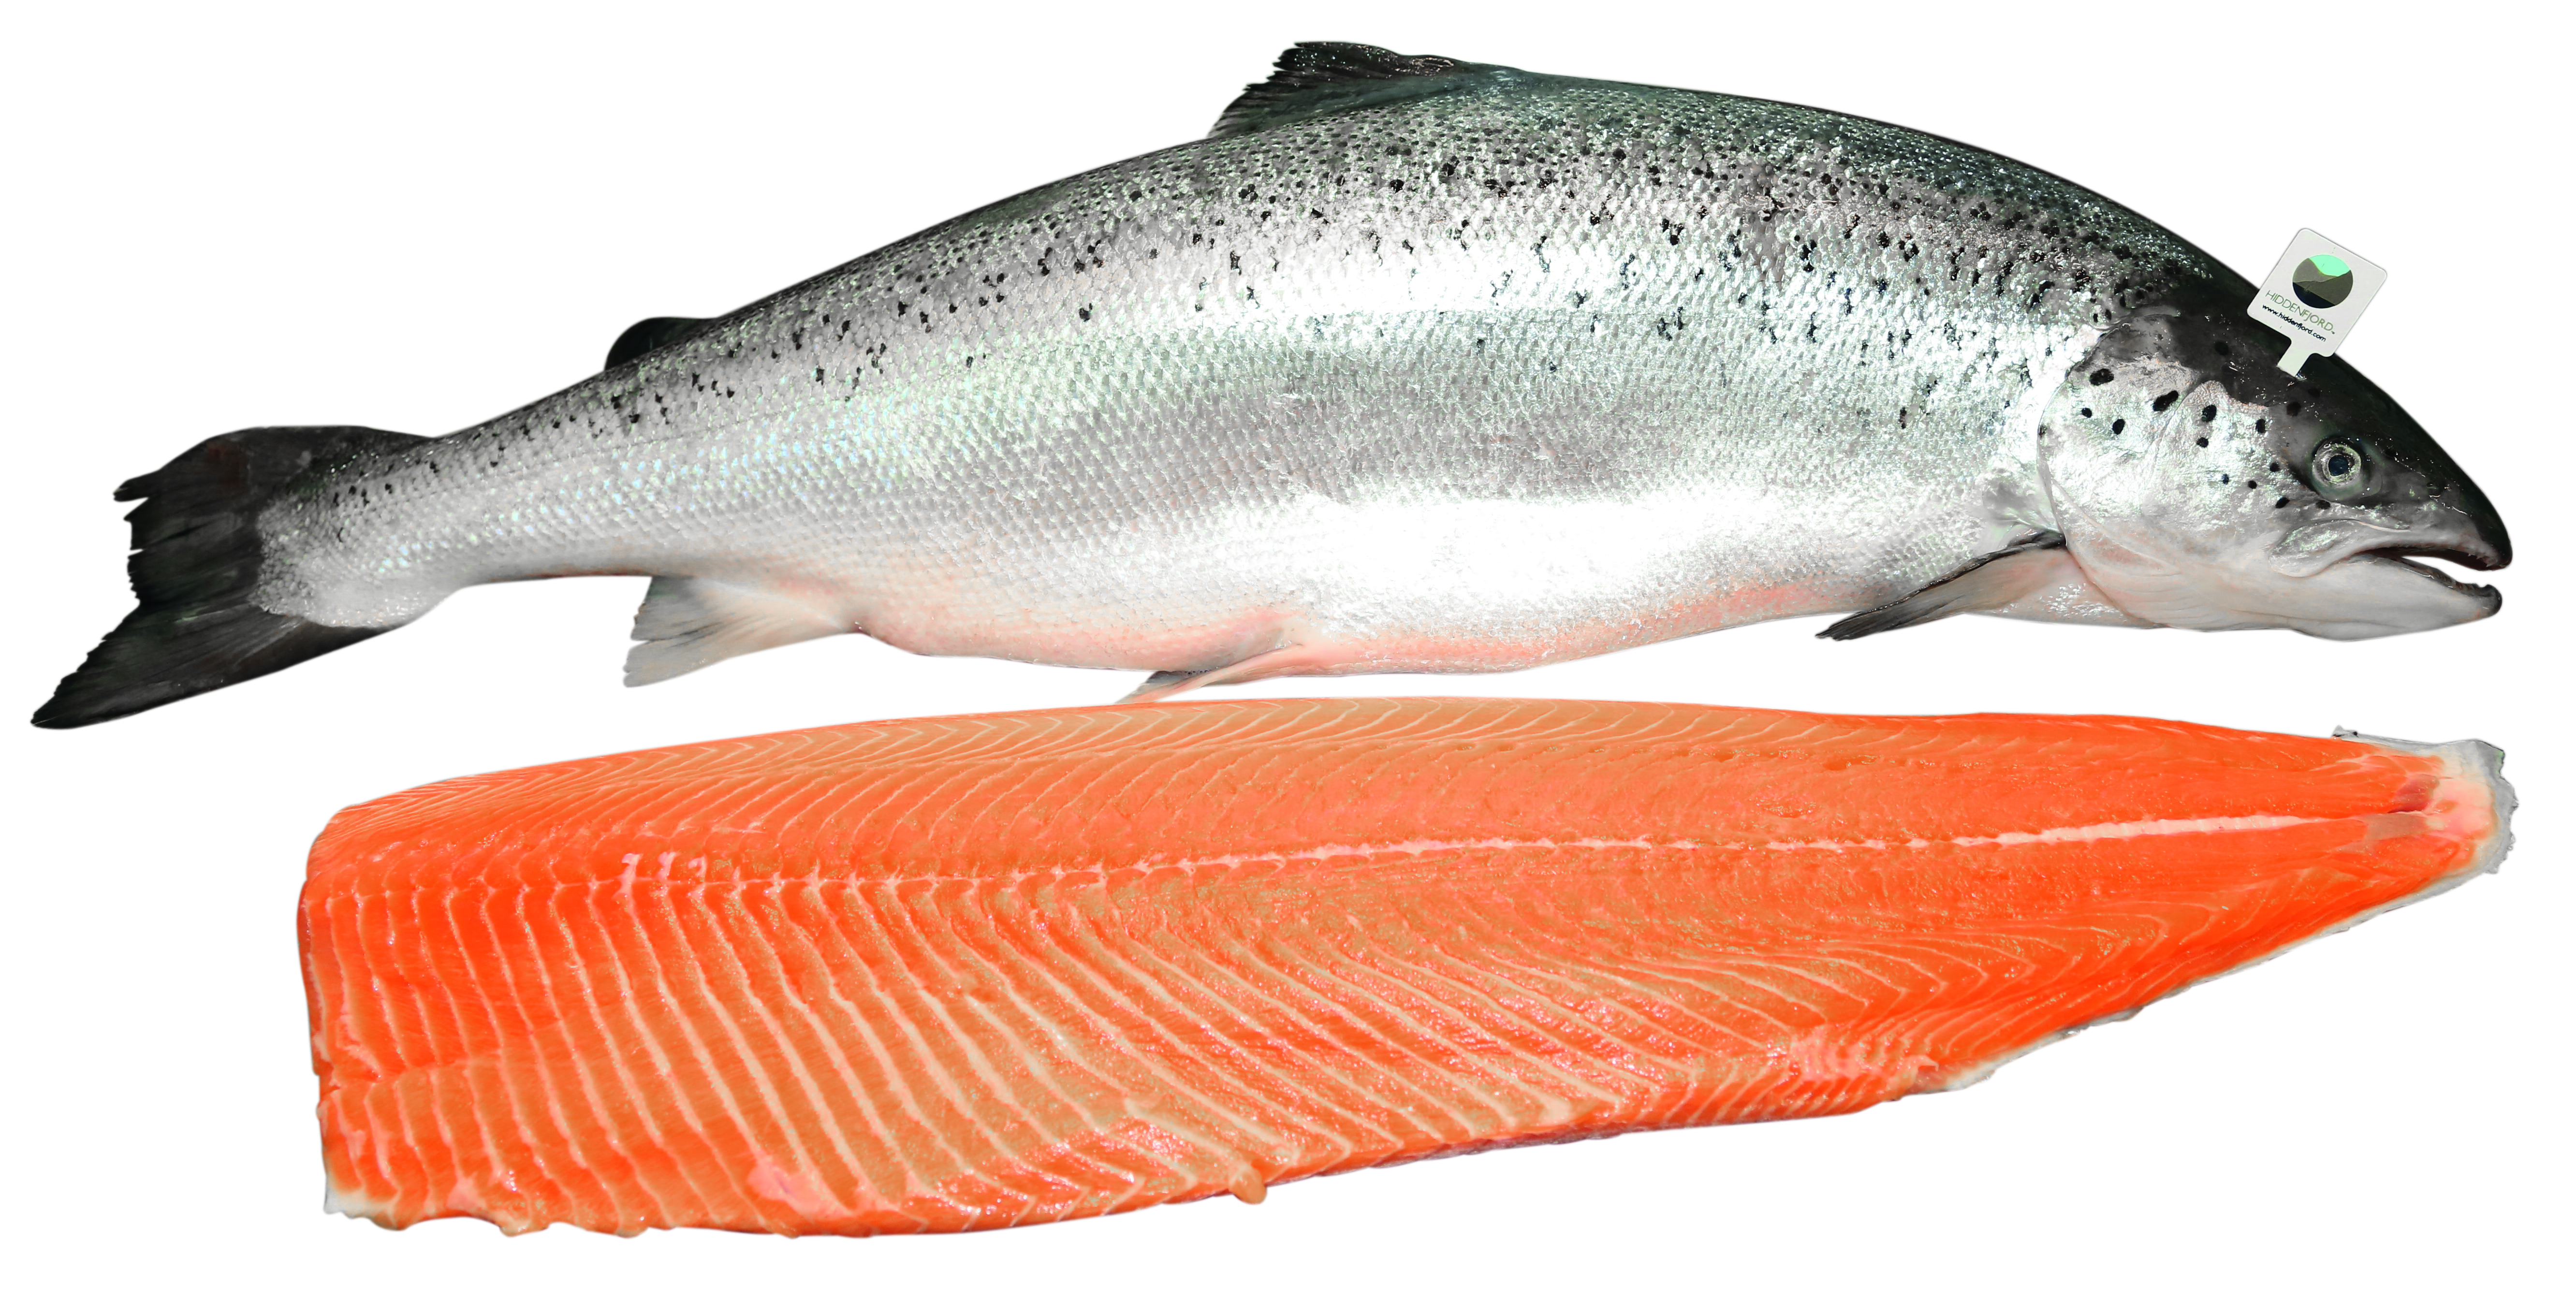 By Ernie Pickens V.54: Wonderful Salmon Picture